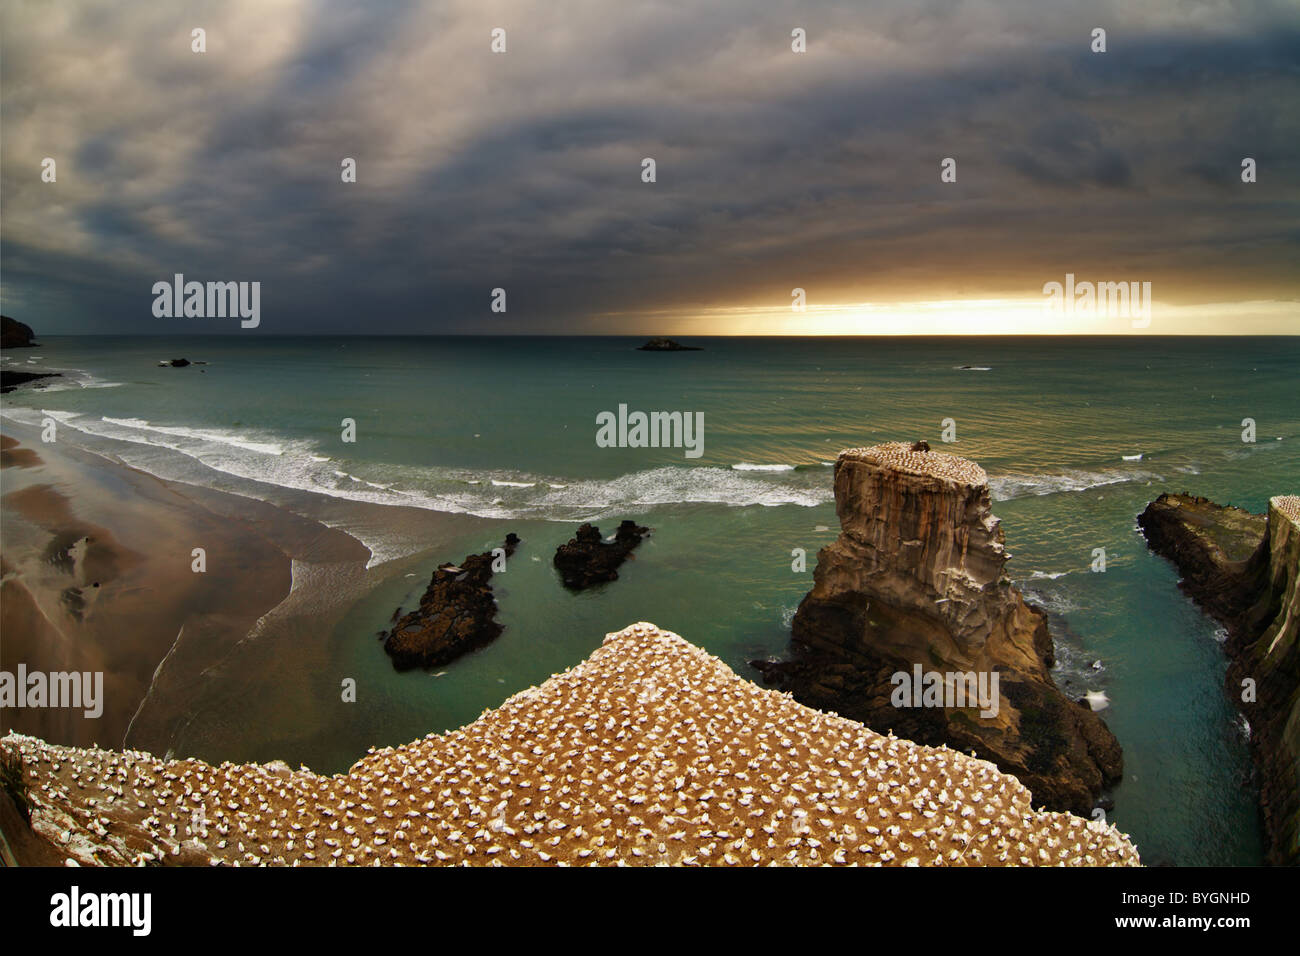 Gannet colony, Muriwai Beach, New Zealand - Stock Image